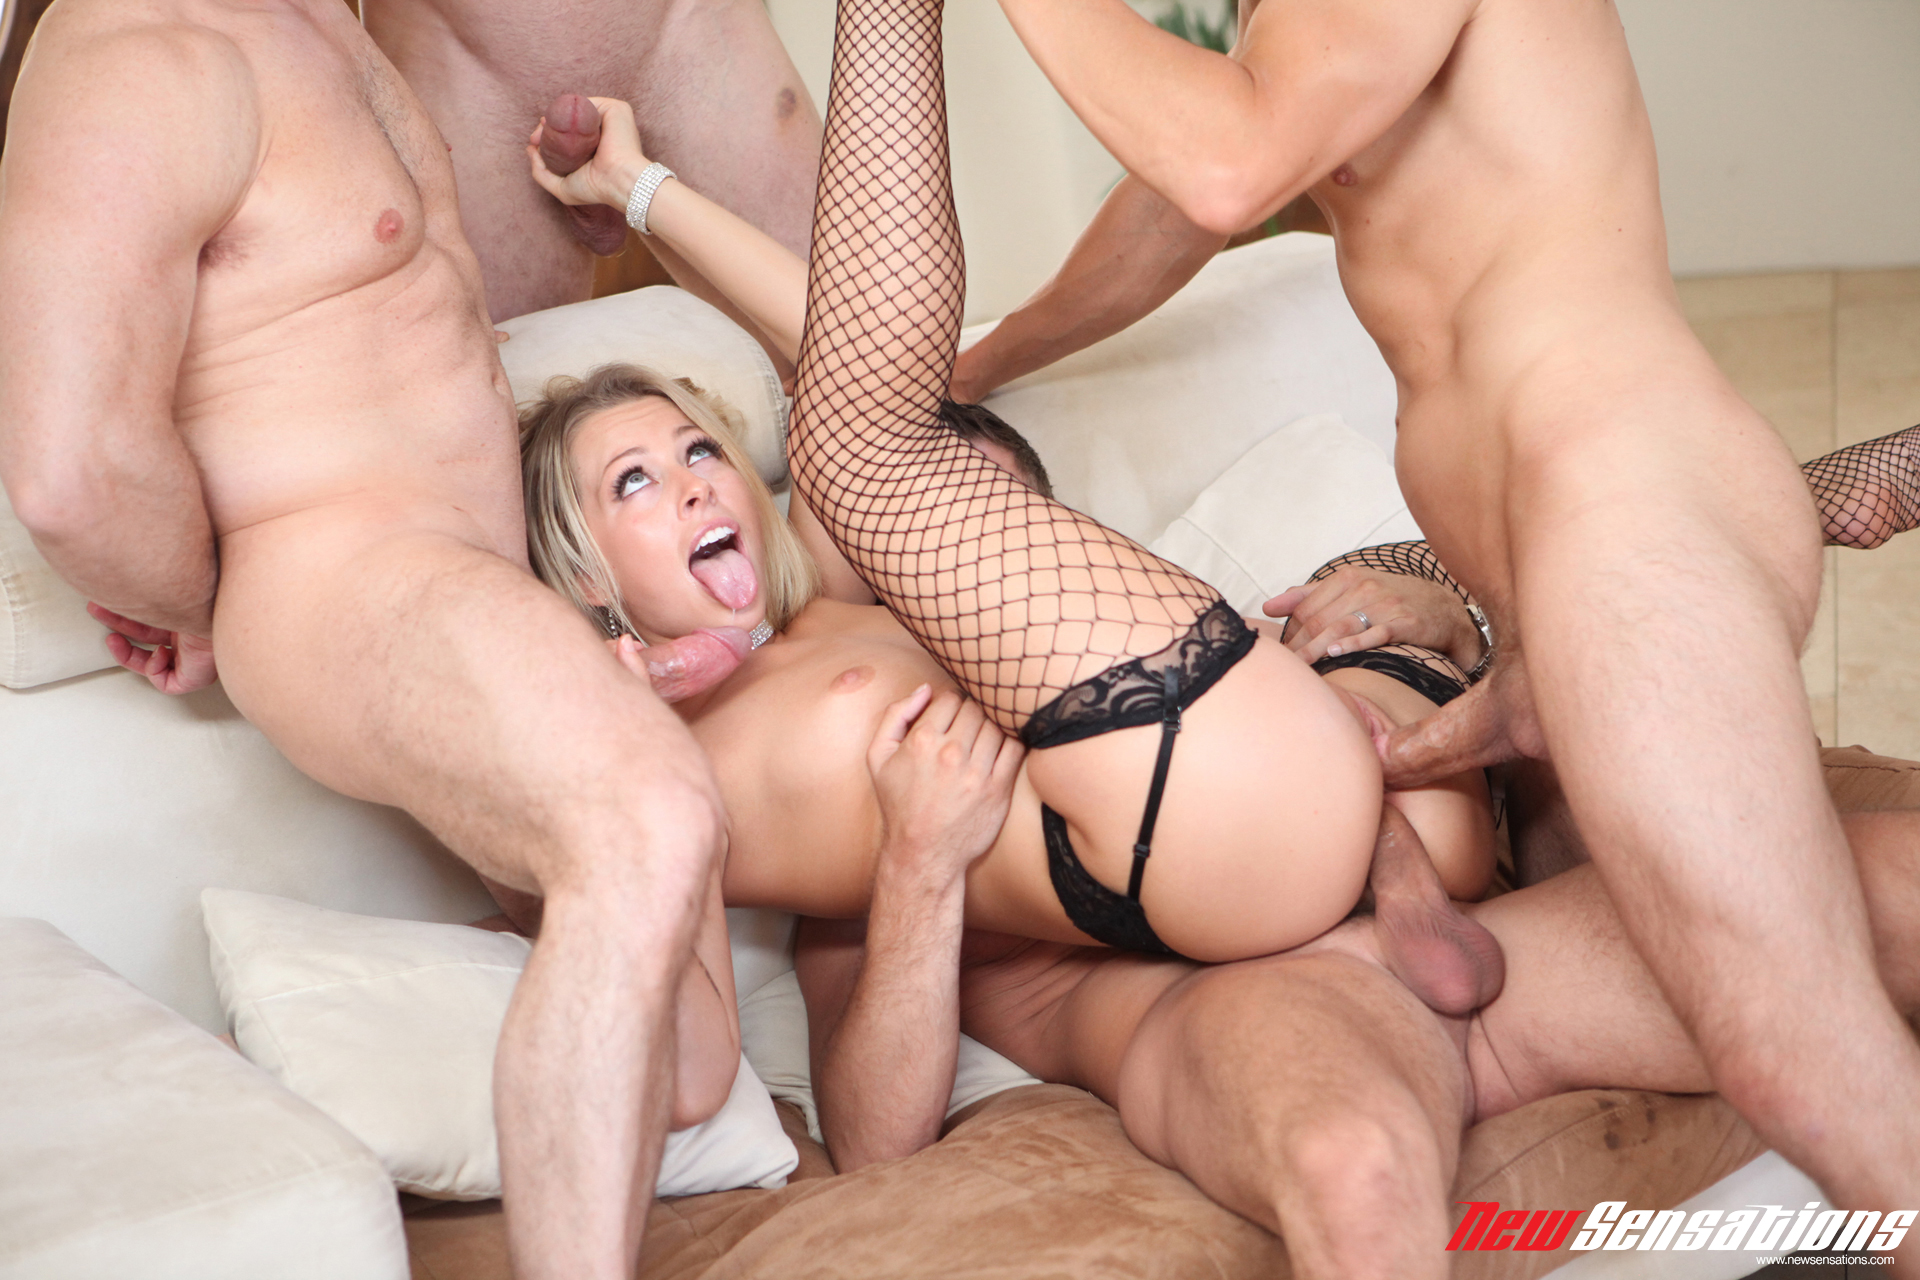 A wild foursome with gorgeous girls 5